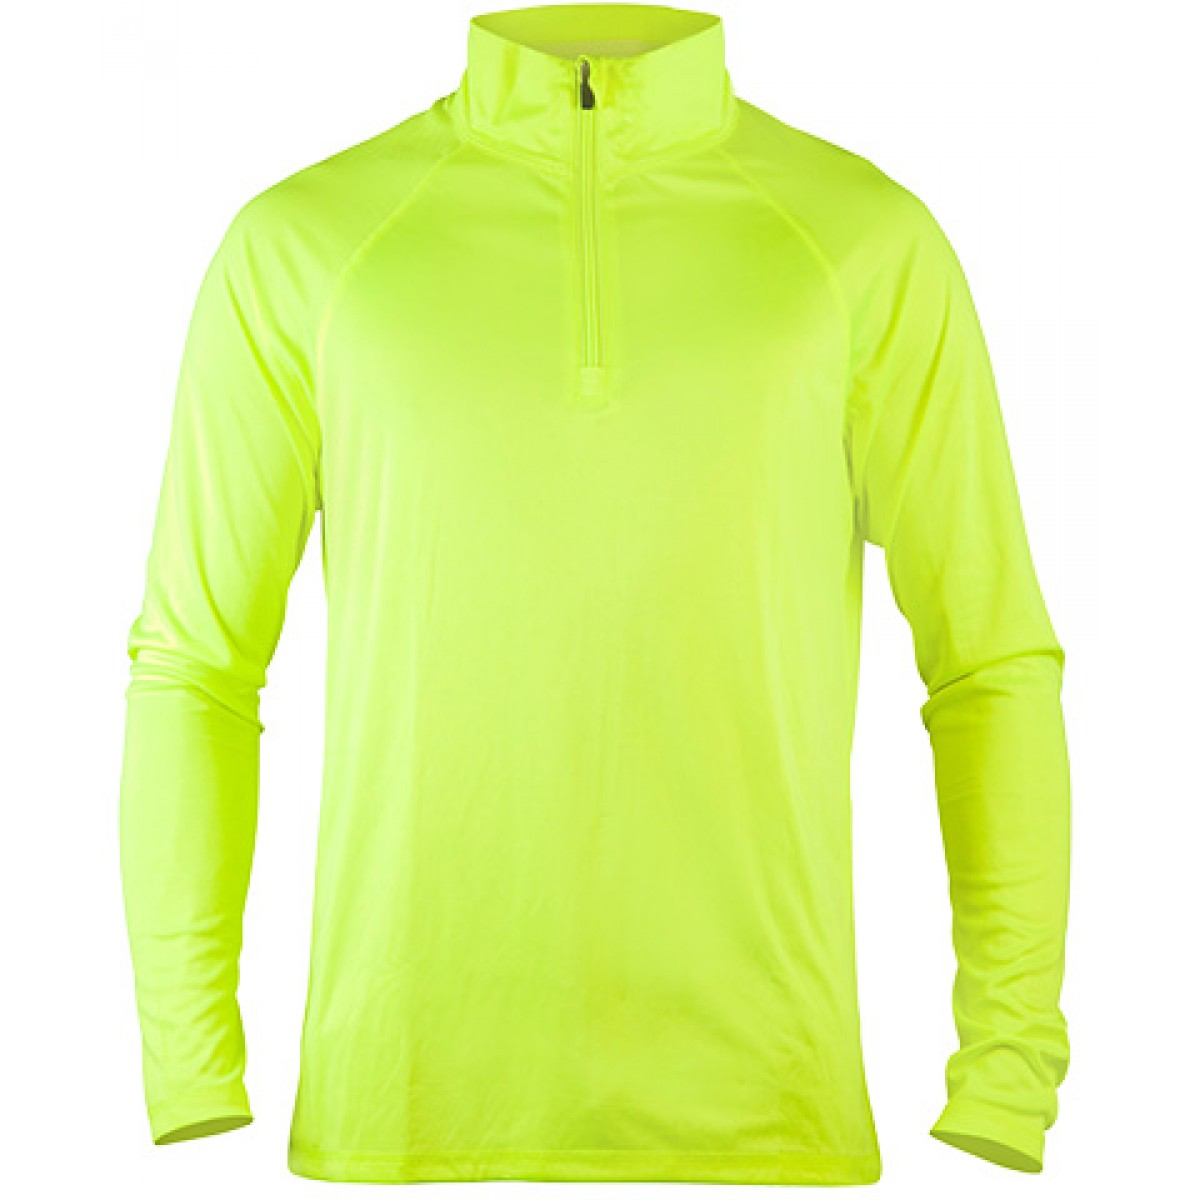 Men's Quarter-Zip Lightweight Pullover-Neon Green-XS